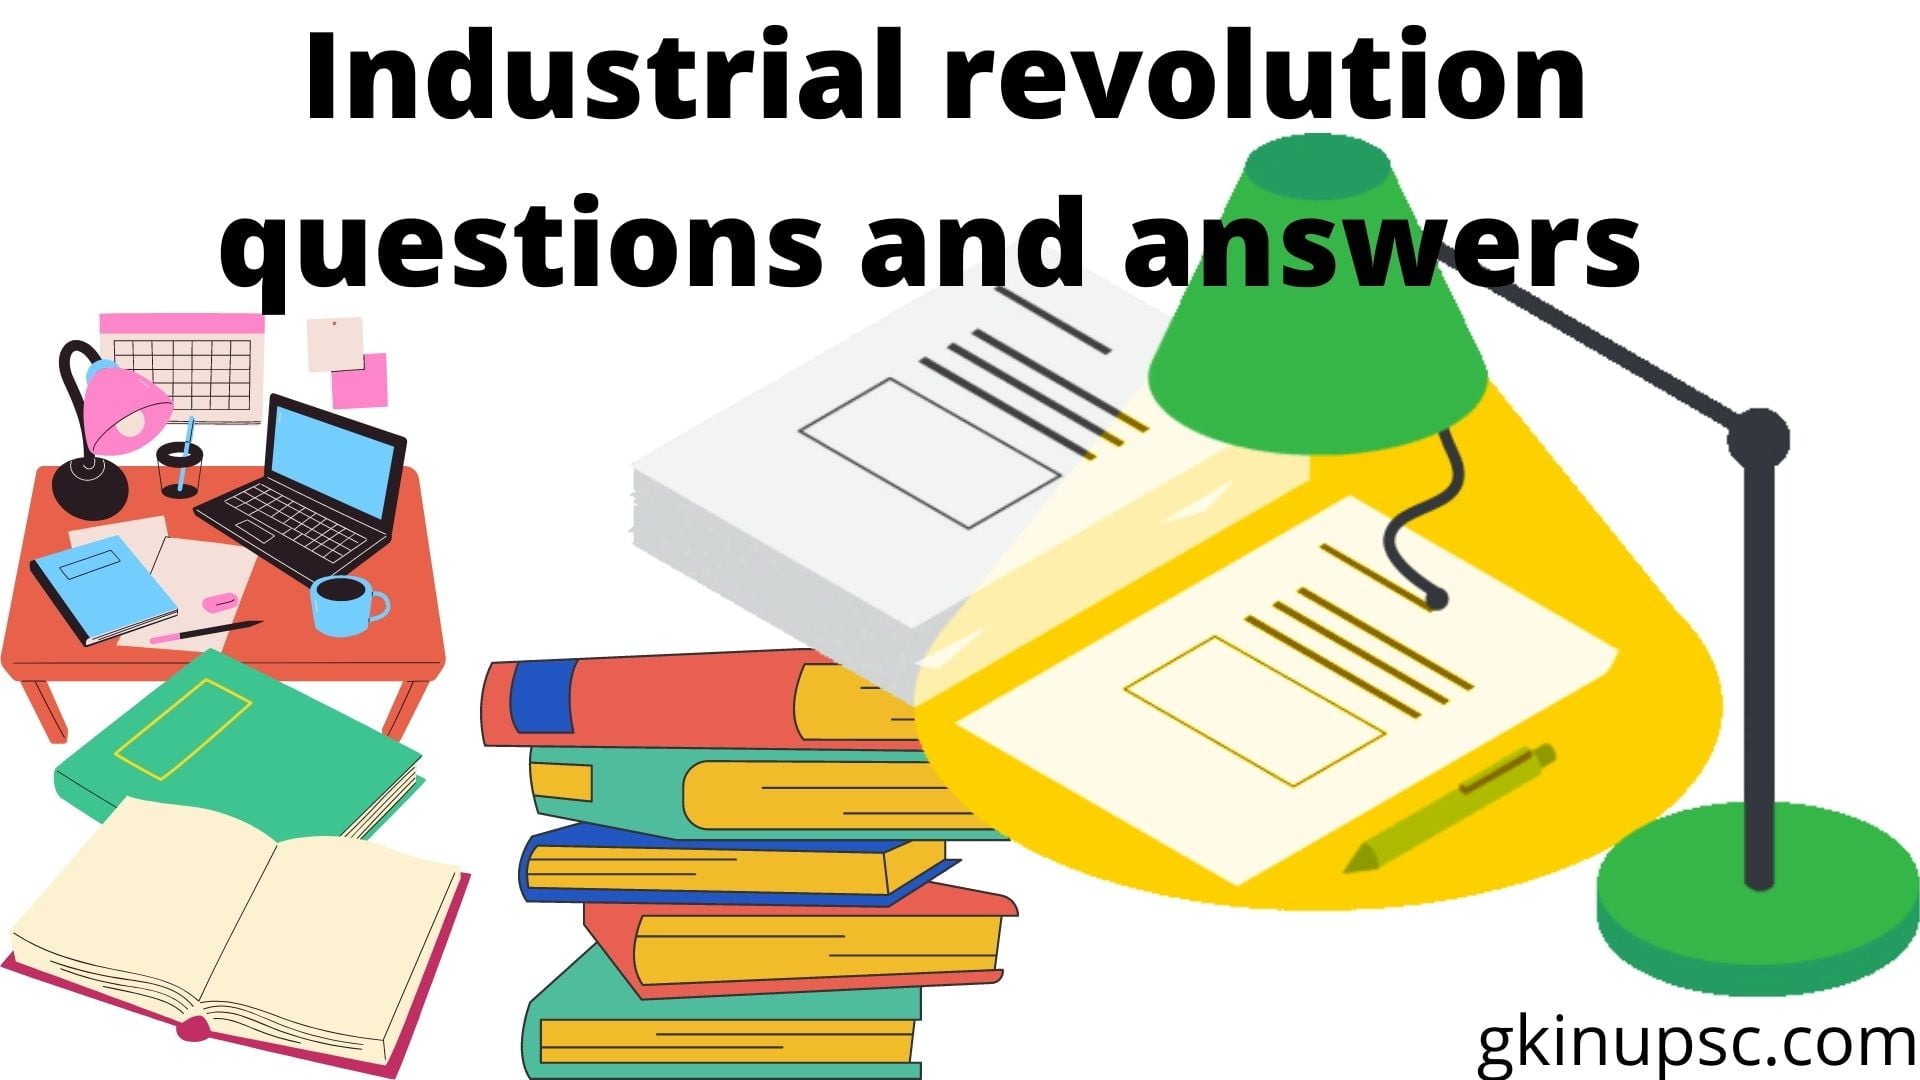 Industrial revolution questions and answers